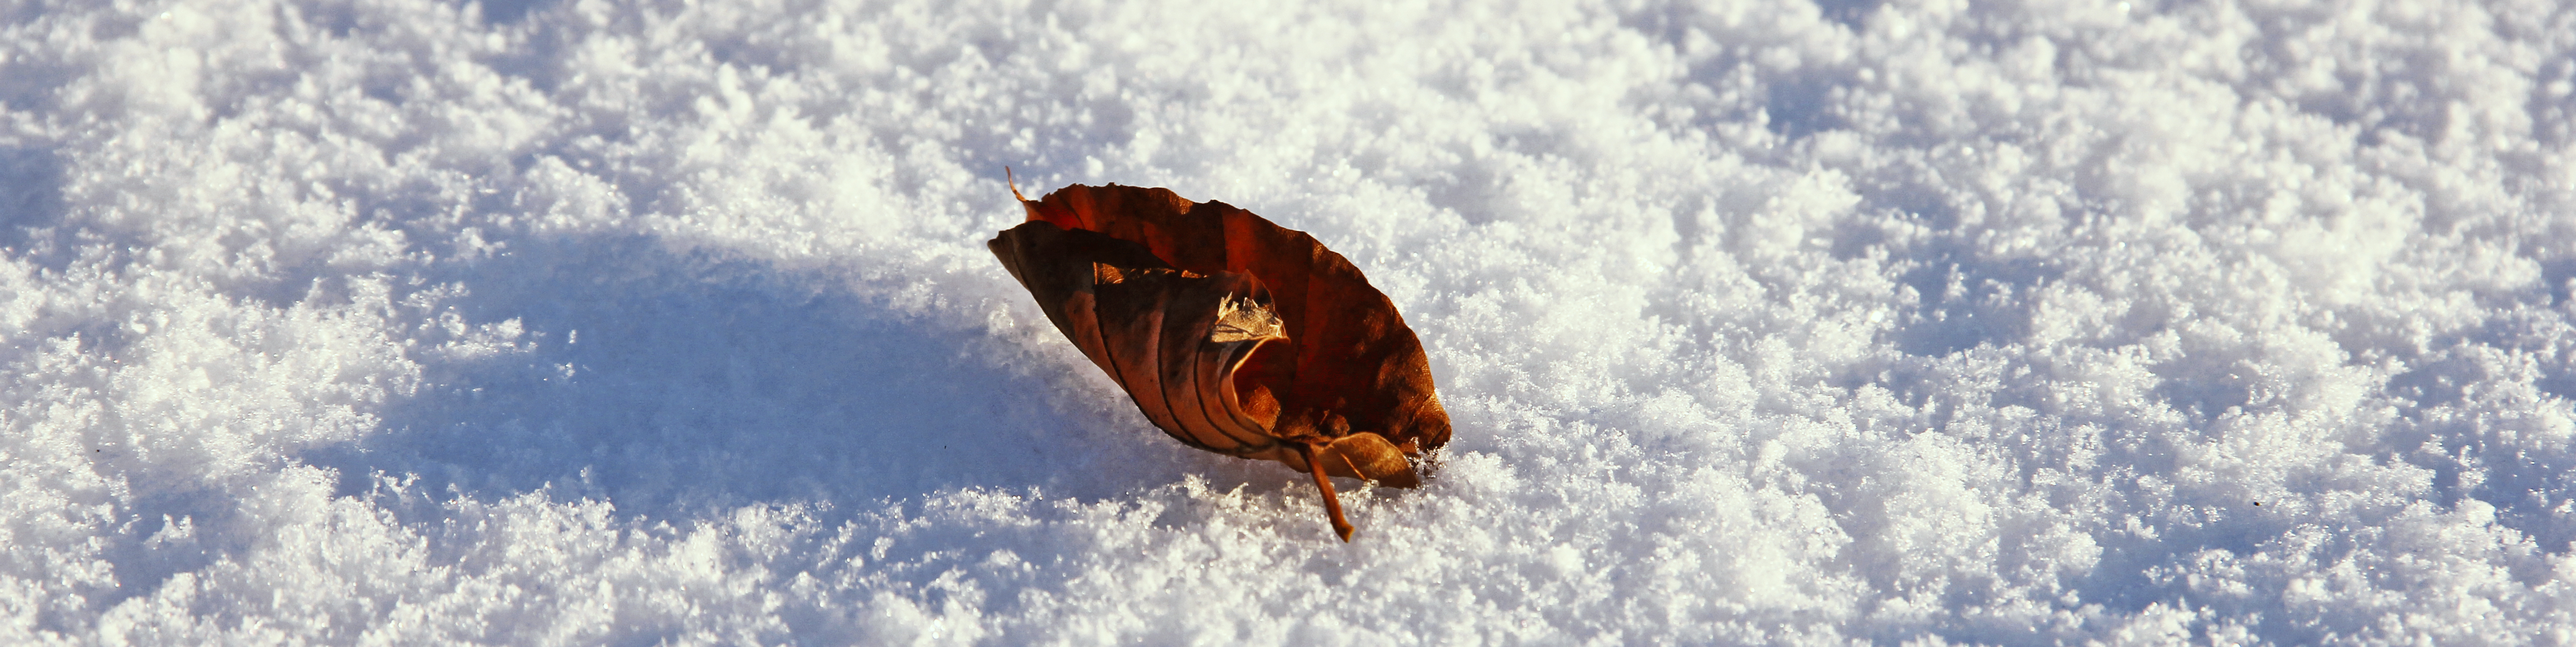 heart leaf snow